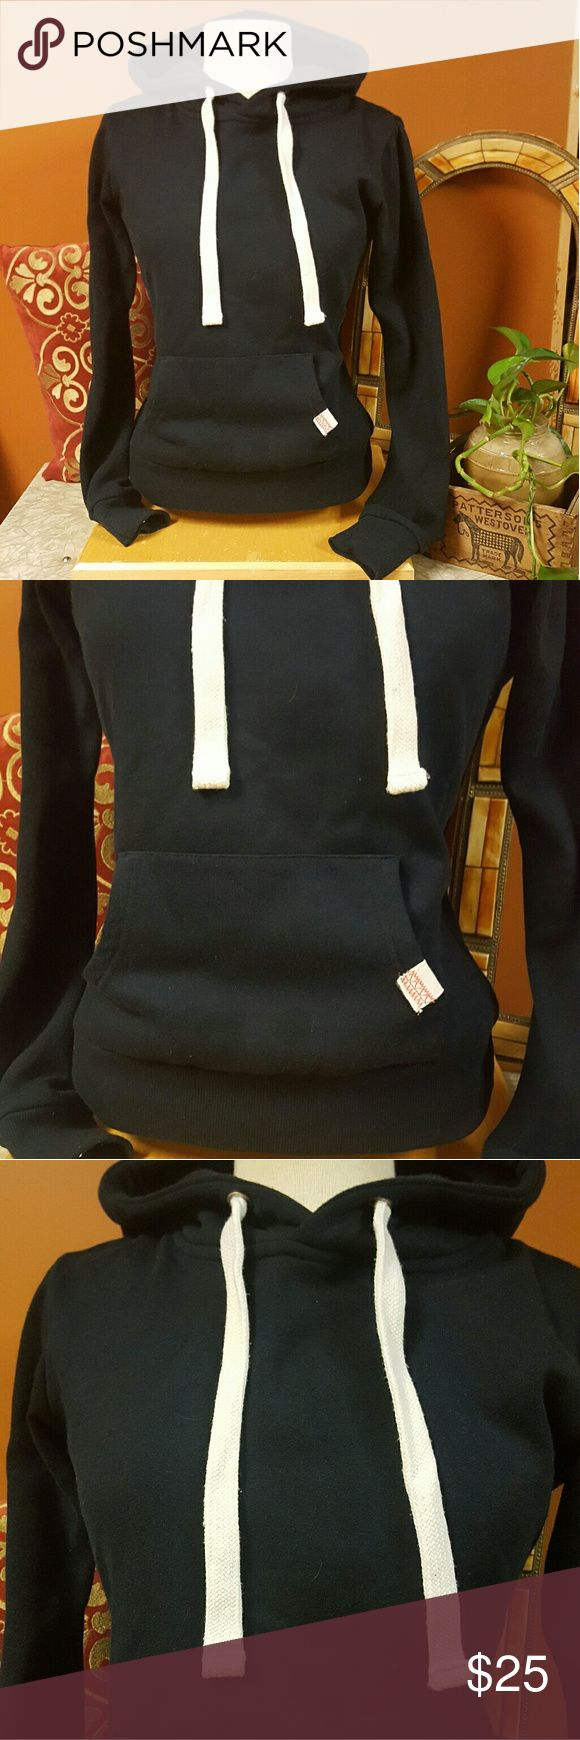 Heritage Hoodie Brand new Super cute dark navy blue Hoodie with thick white draw strings. Heritage Sweaters